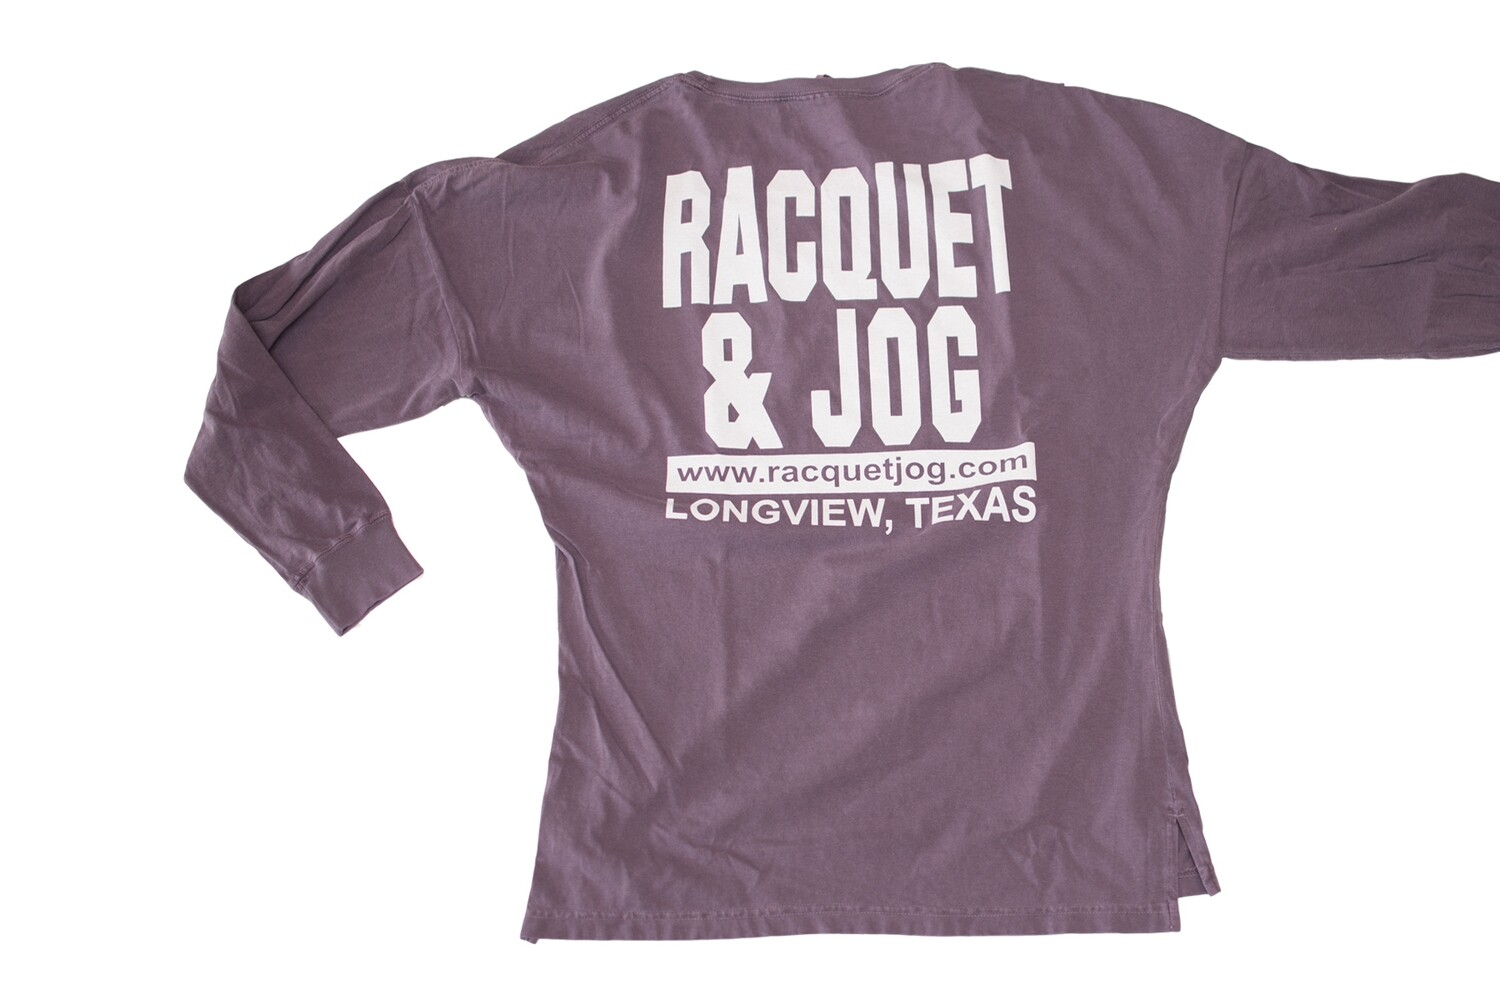 Racquet & Jog Old School Core Oversized Fit Long Sleeve Tee